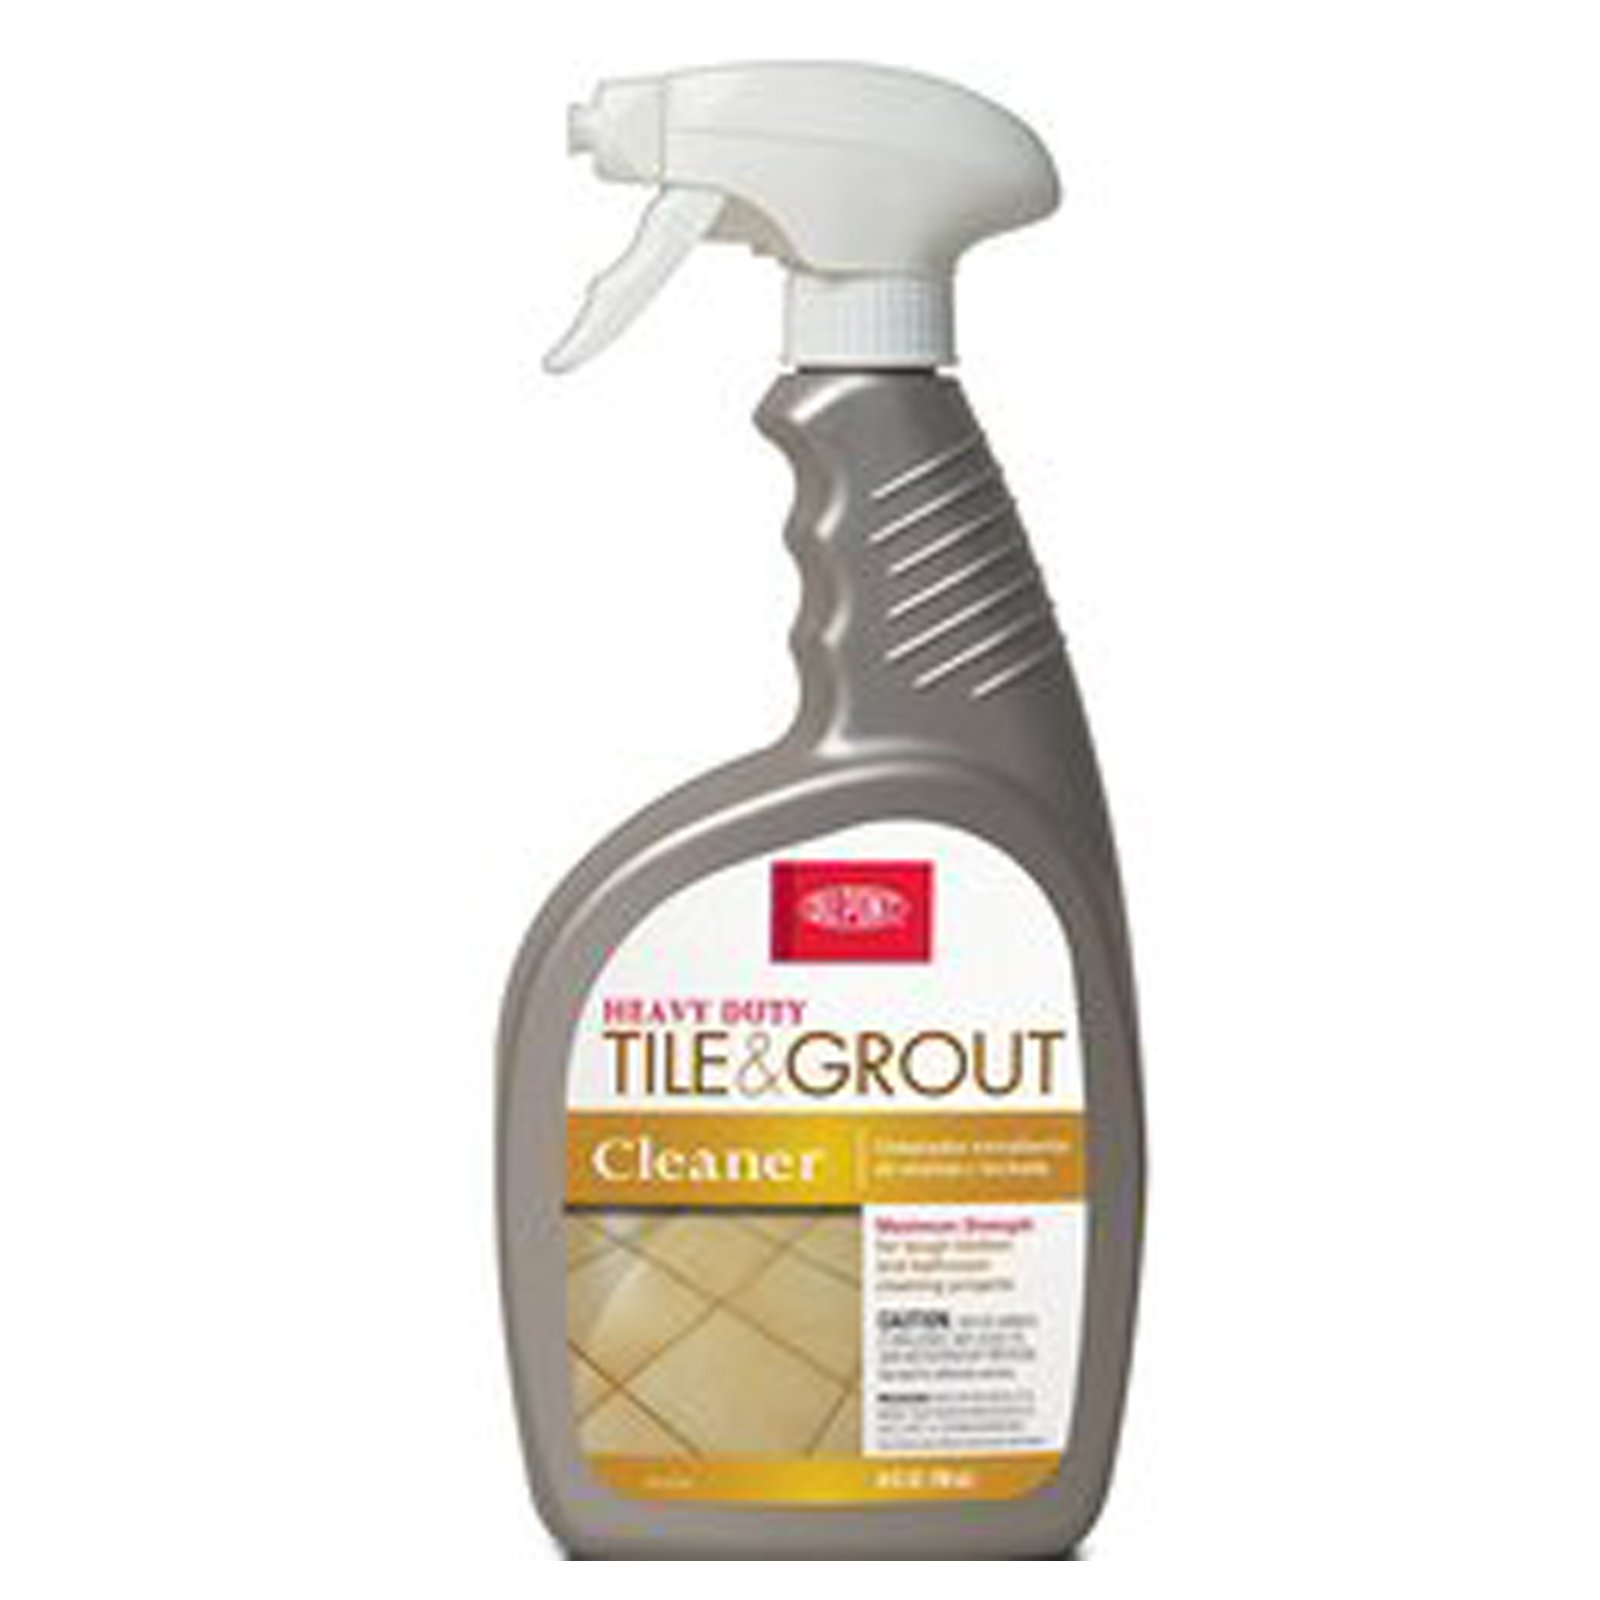 Cheap Bathroom Grout, find Bathroom Grout deals on line at Alibaba.com